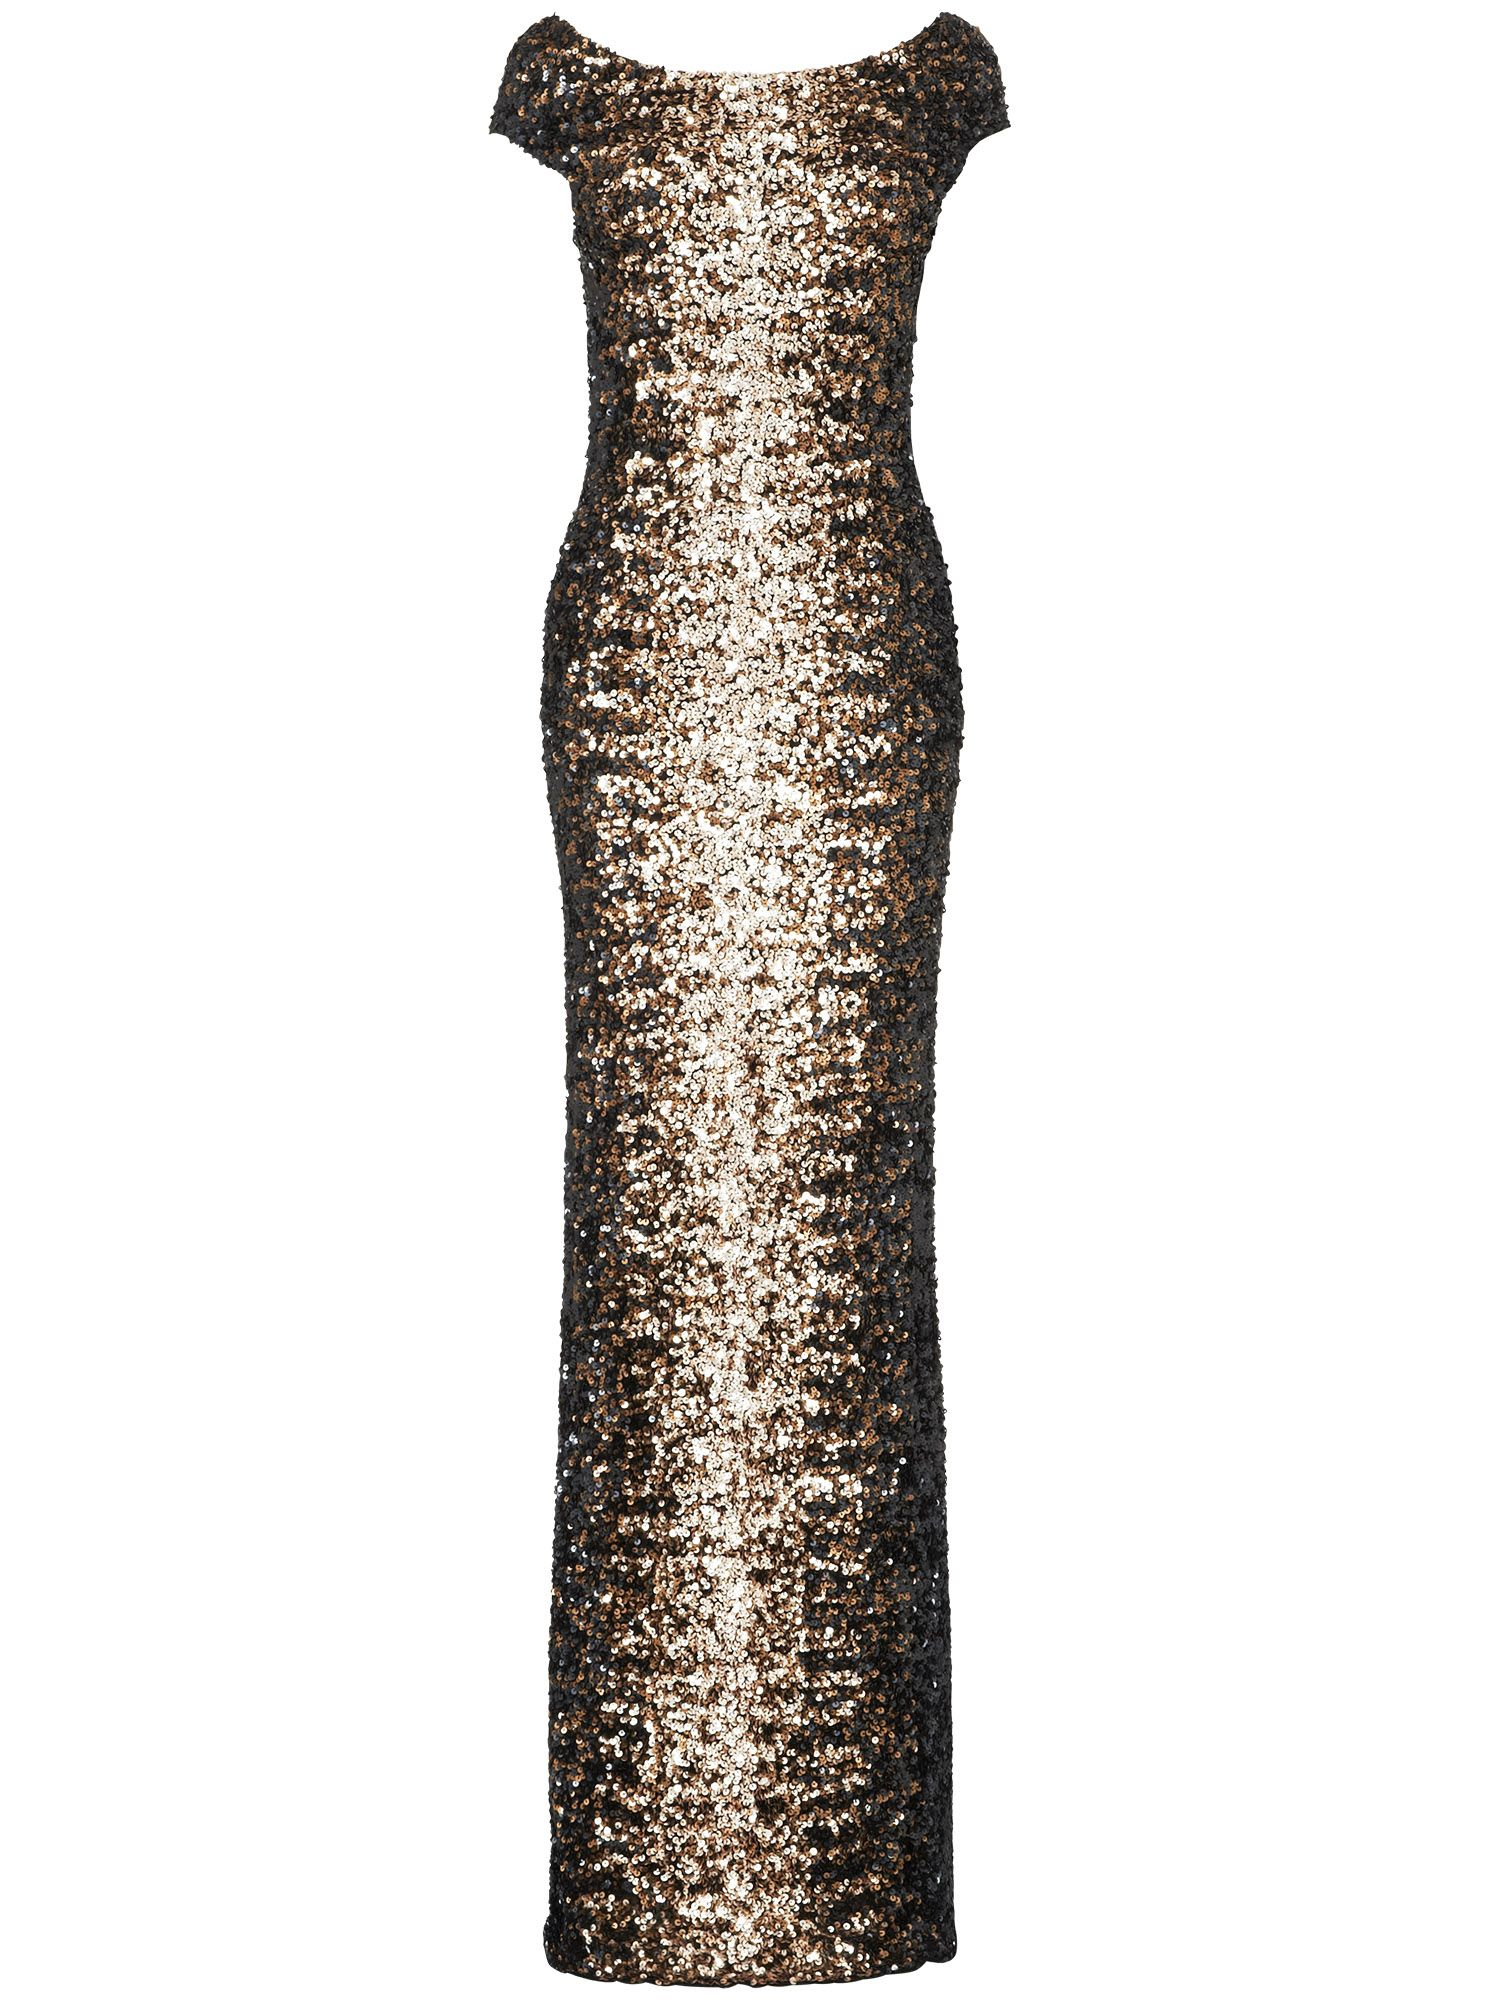 Daria embellished full length dress